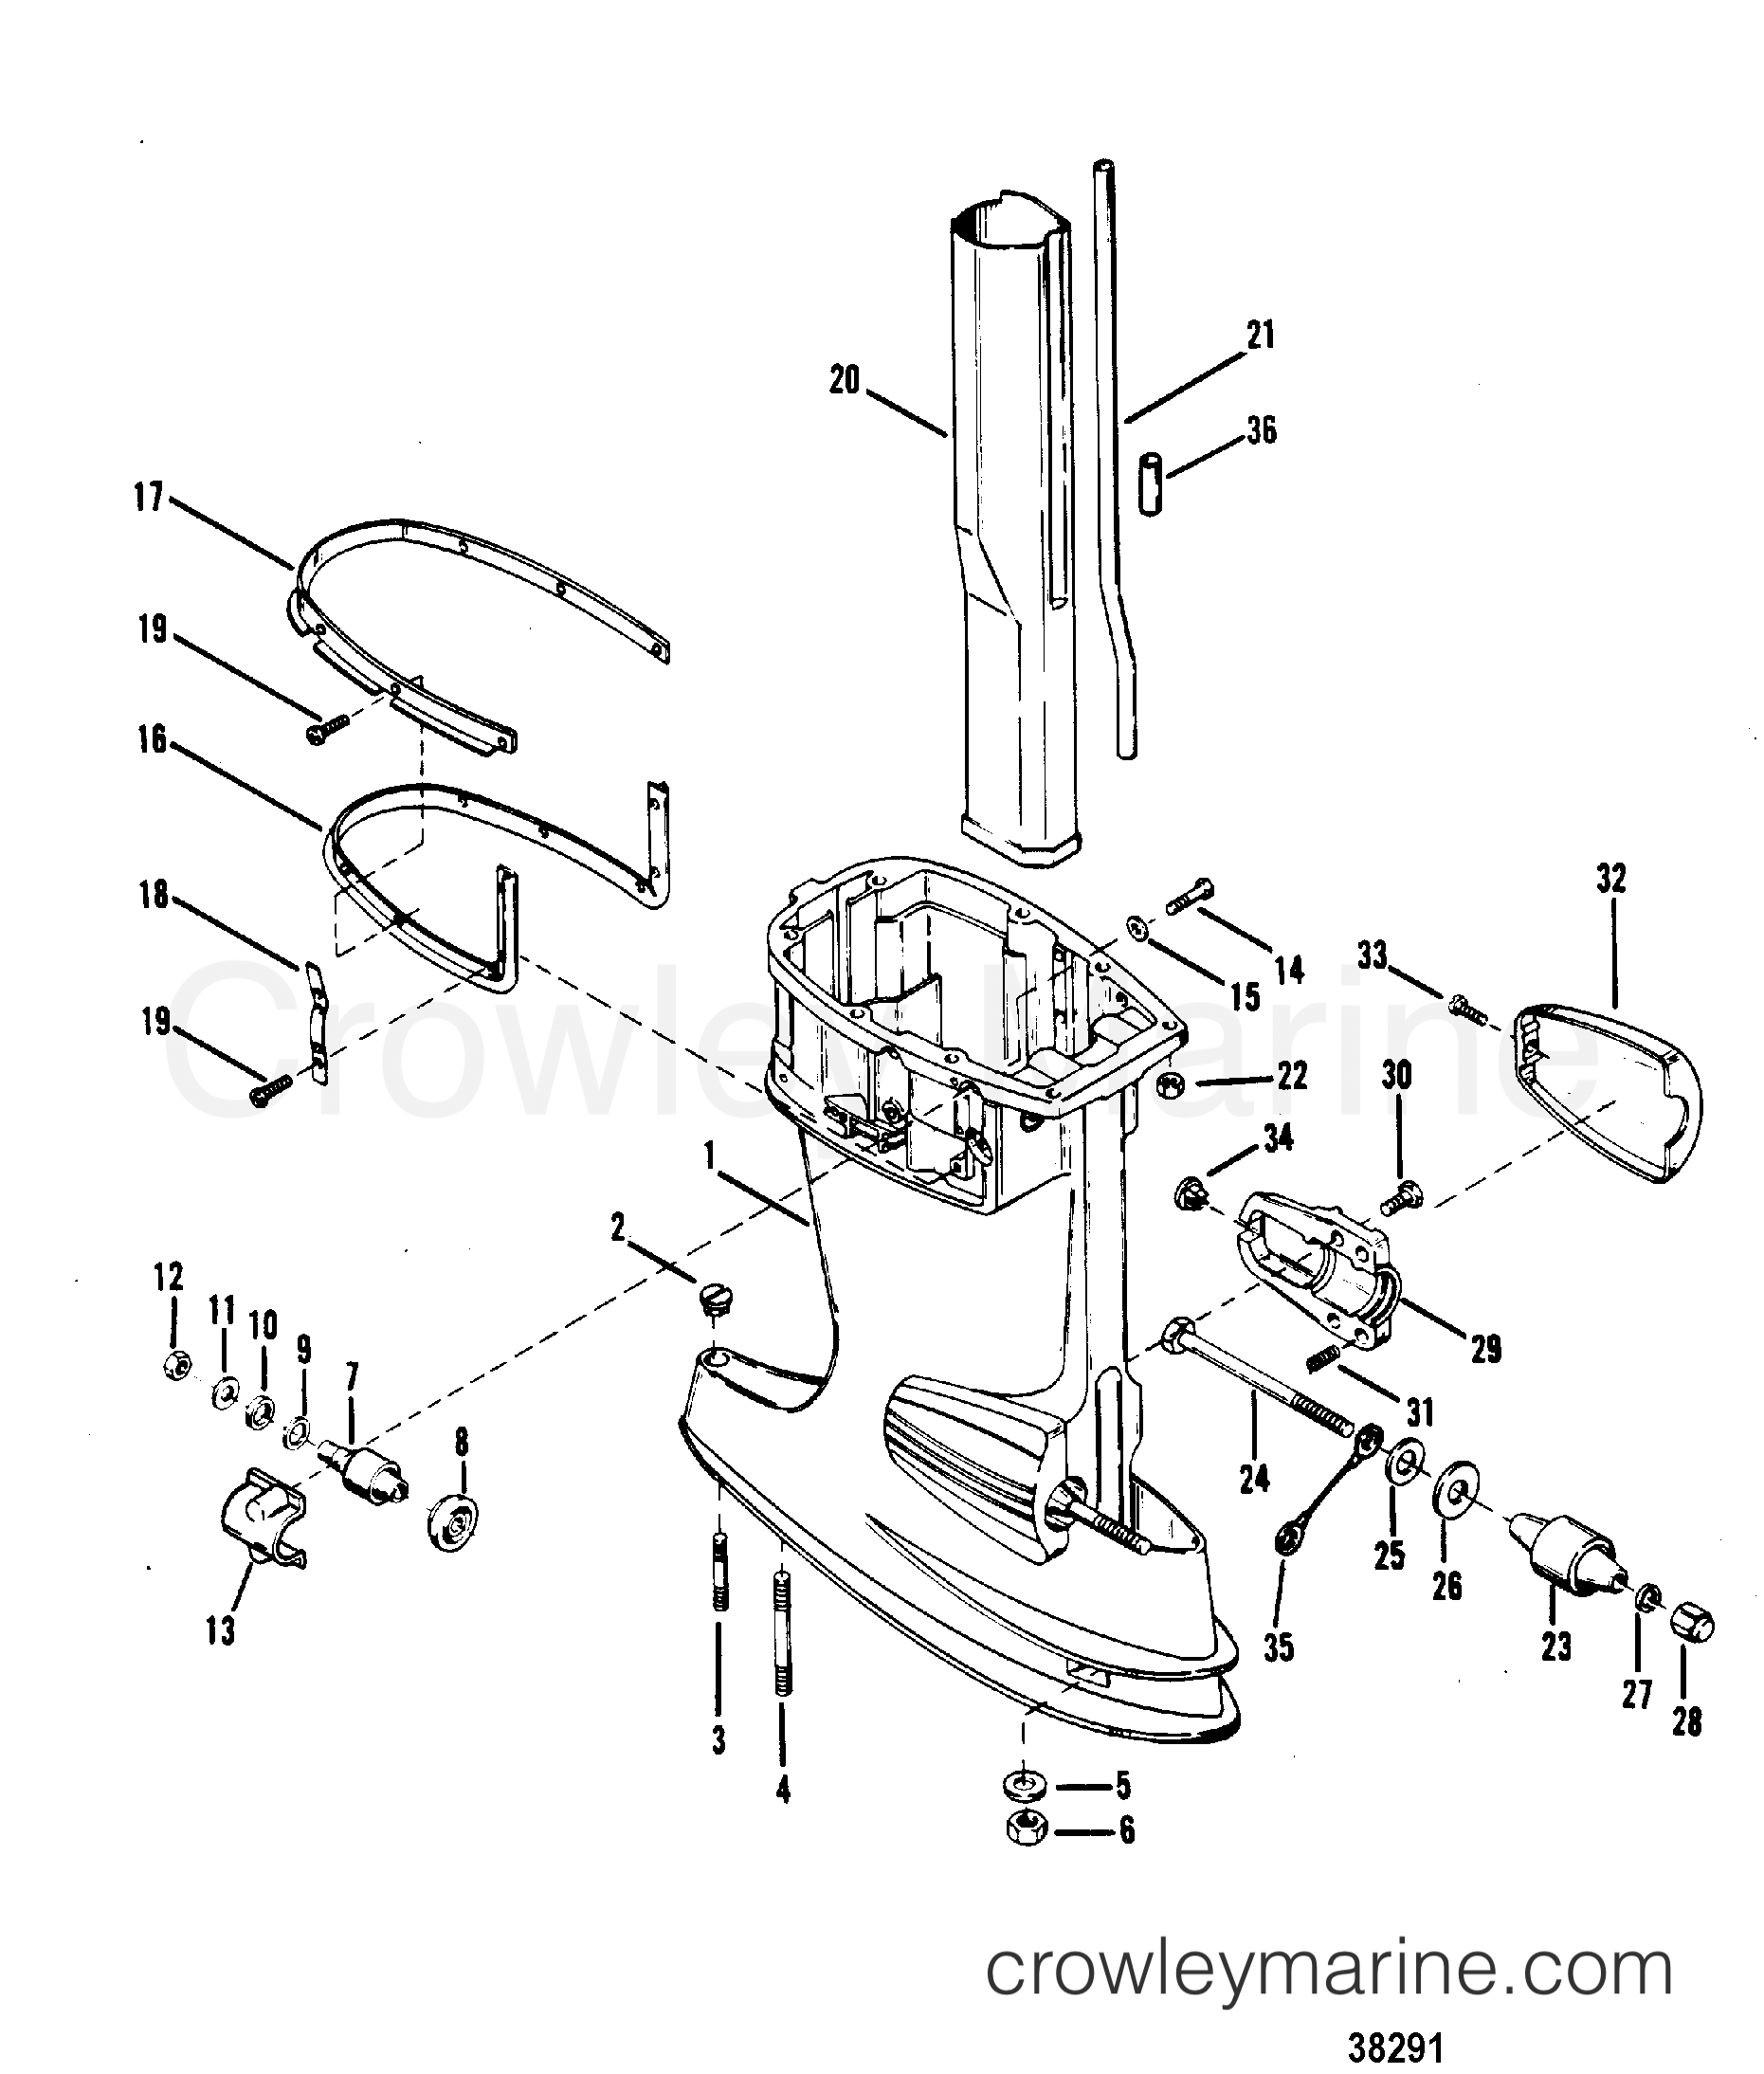 1980 Mercury Outboard 70 [ELPT] -  1070620 DRIVESHAFT HOUSING ASSEMBLY section